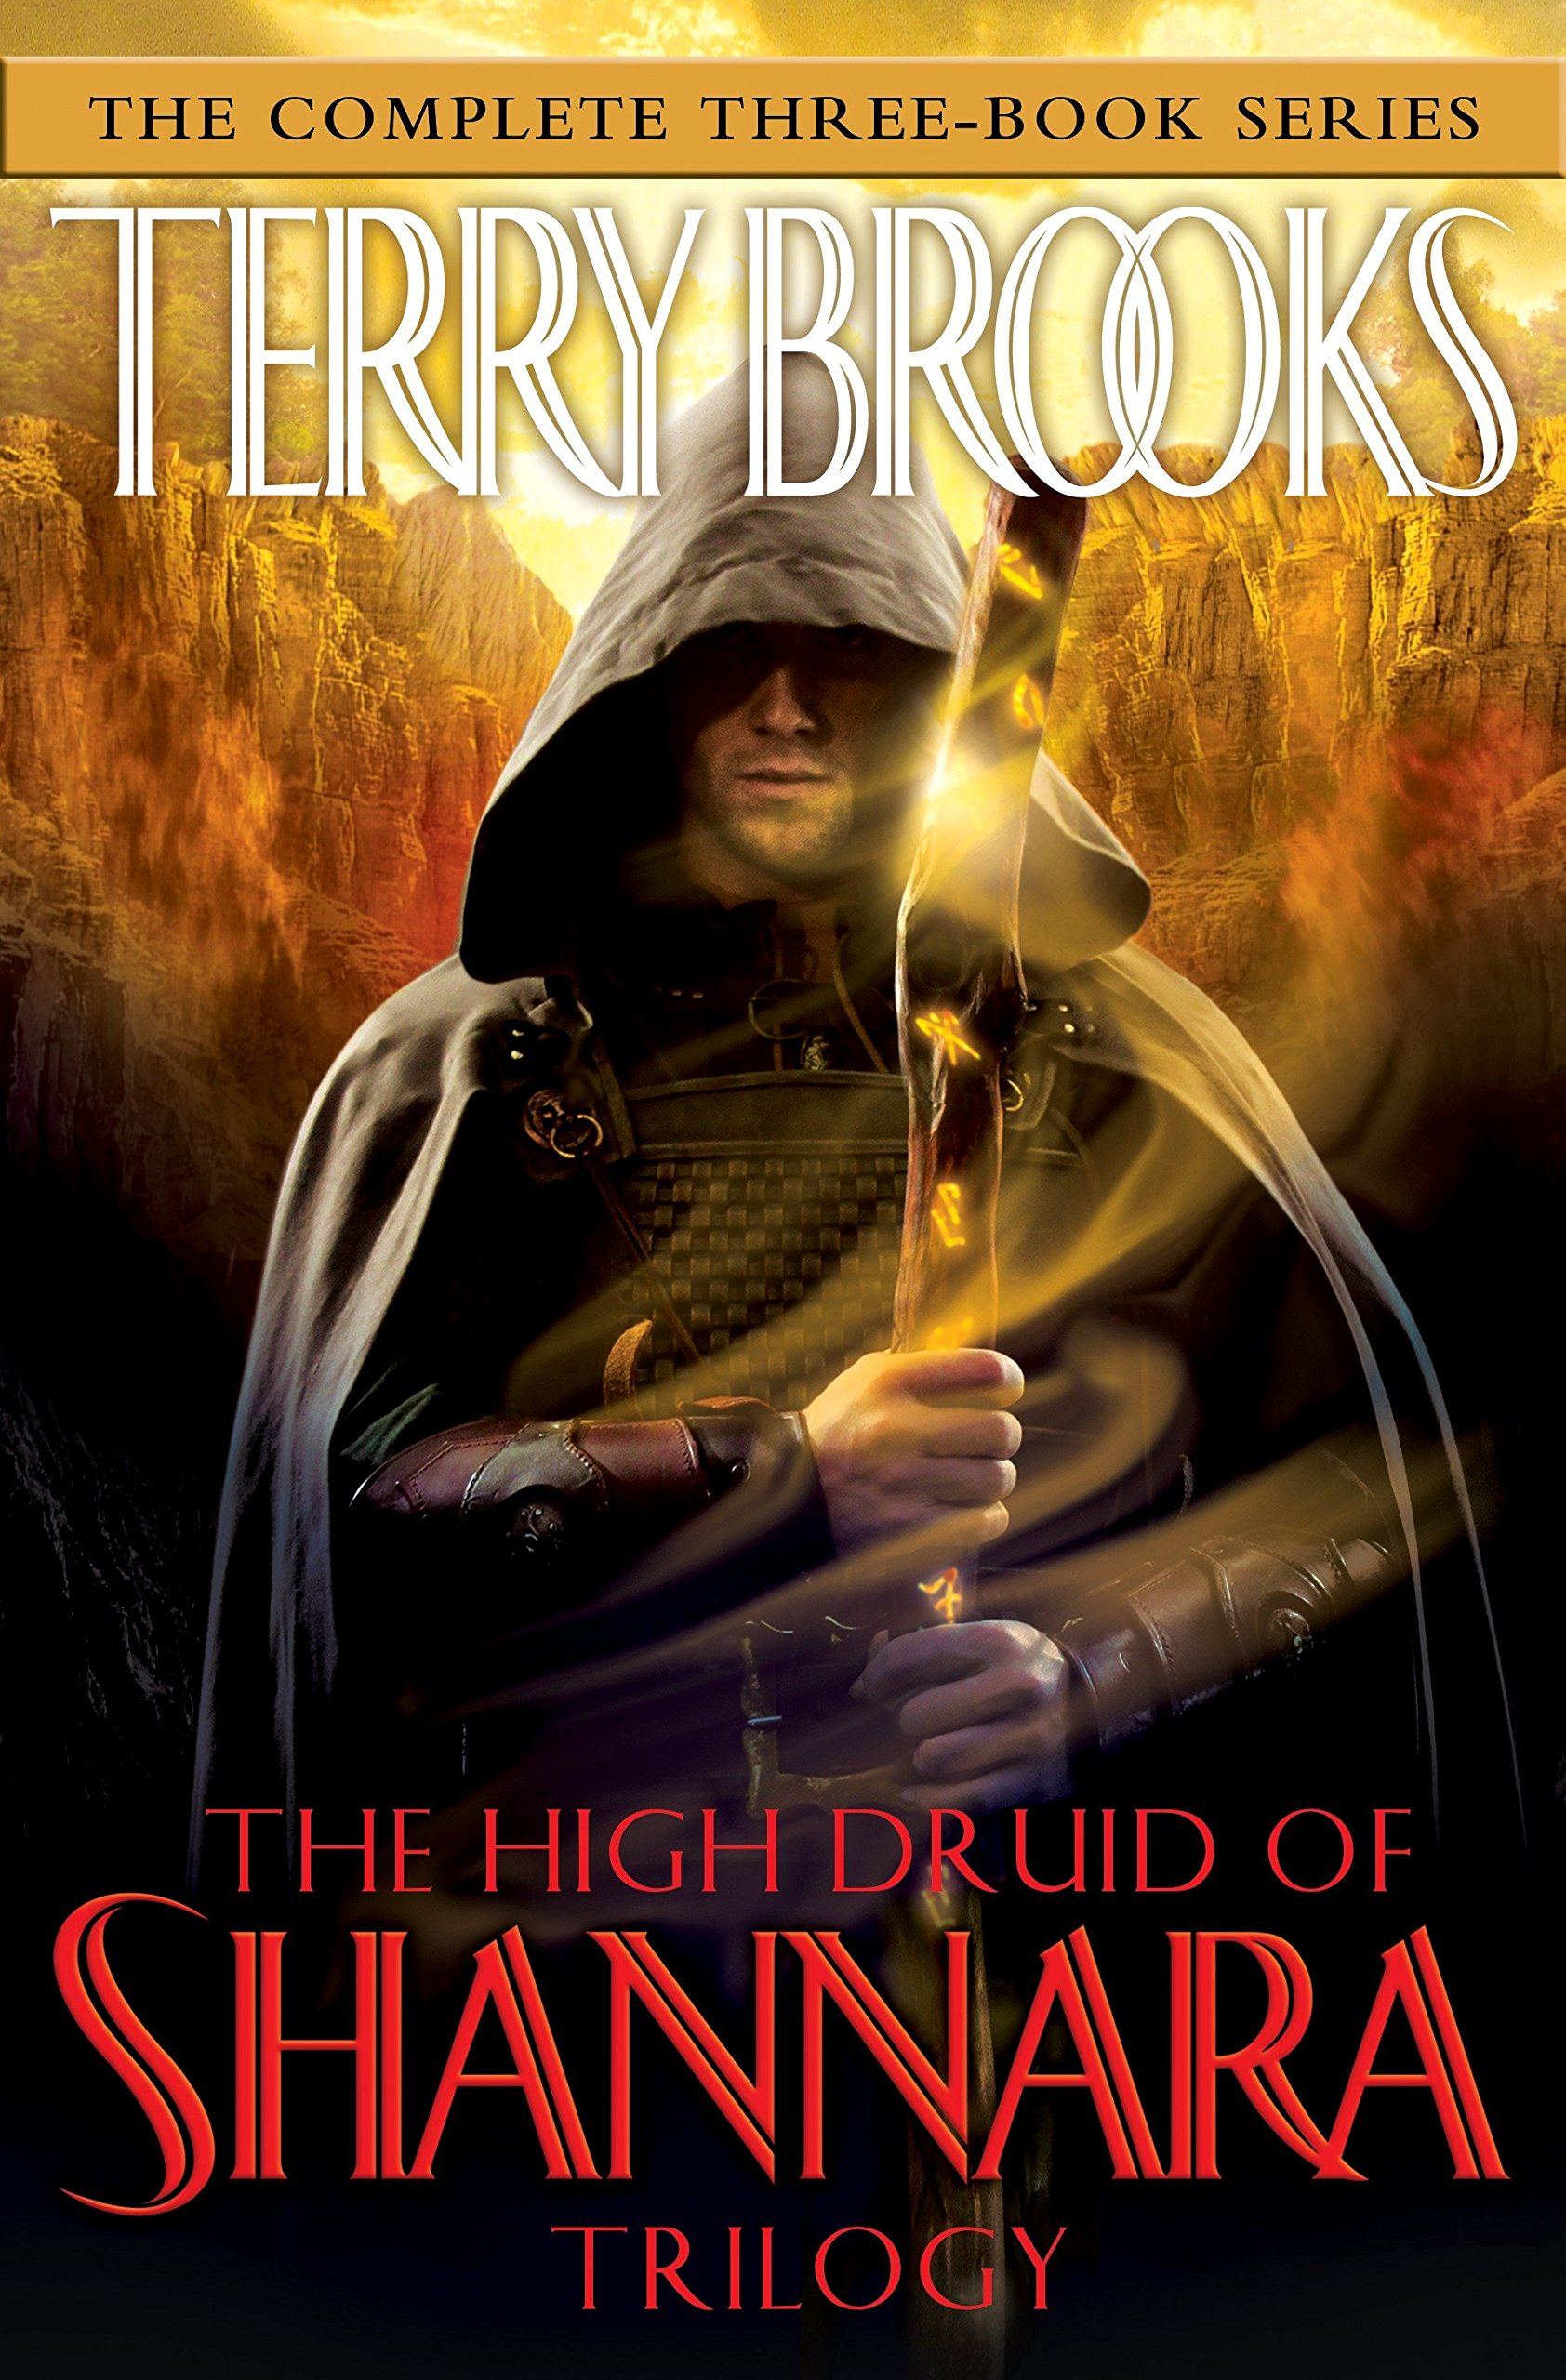 Download The High Druid of Shannara Trilogy PDF